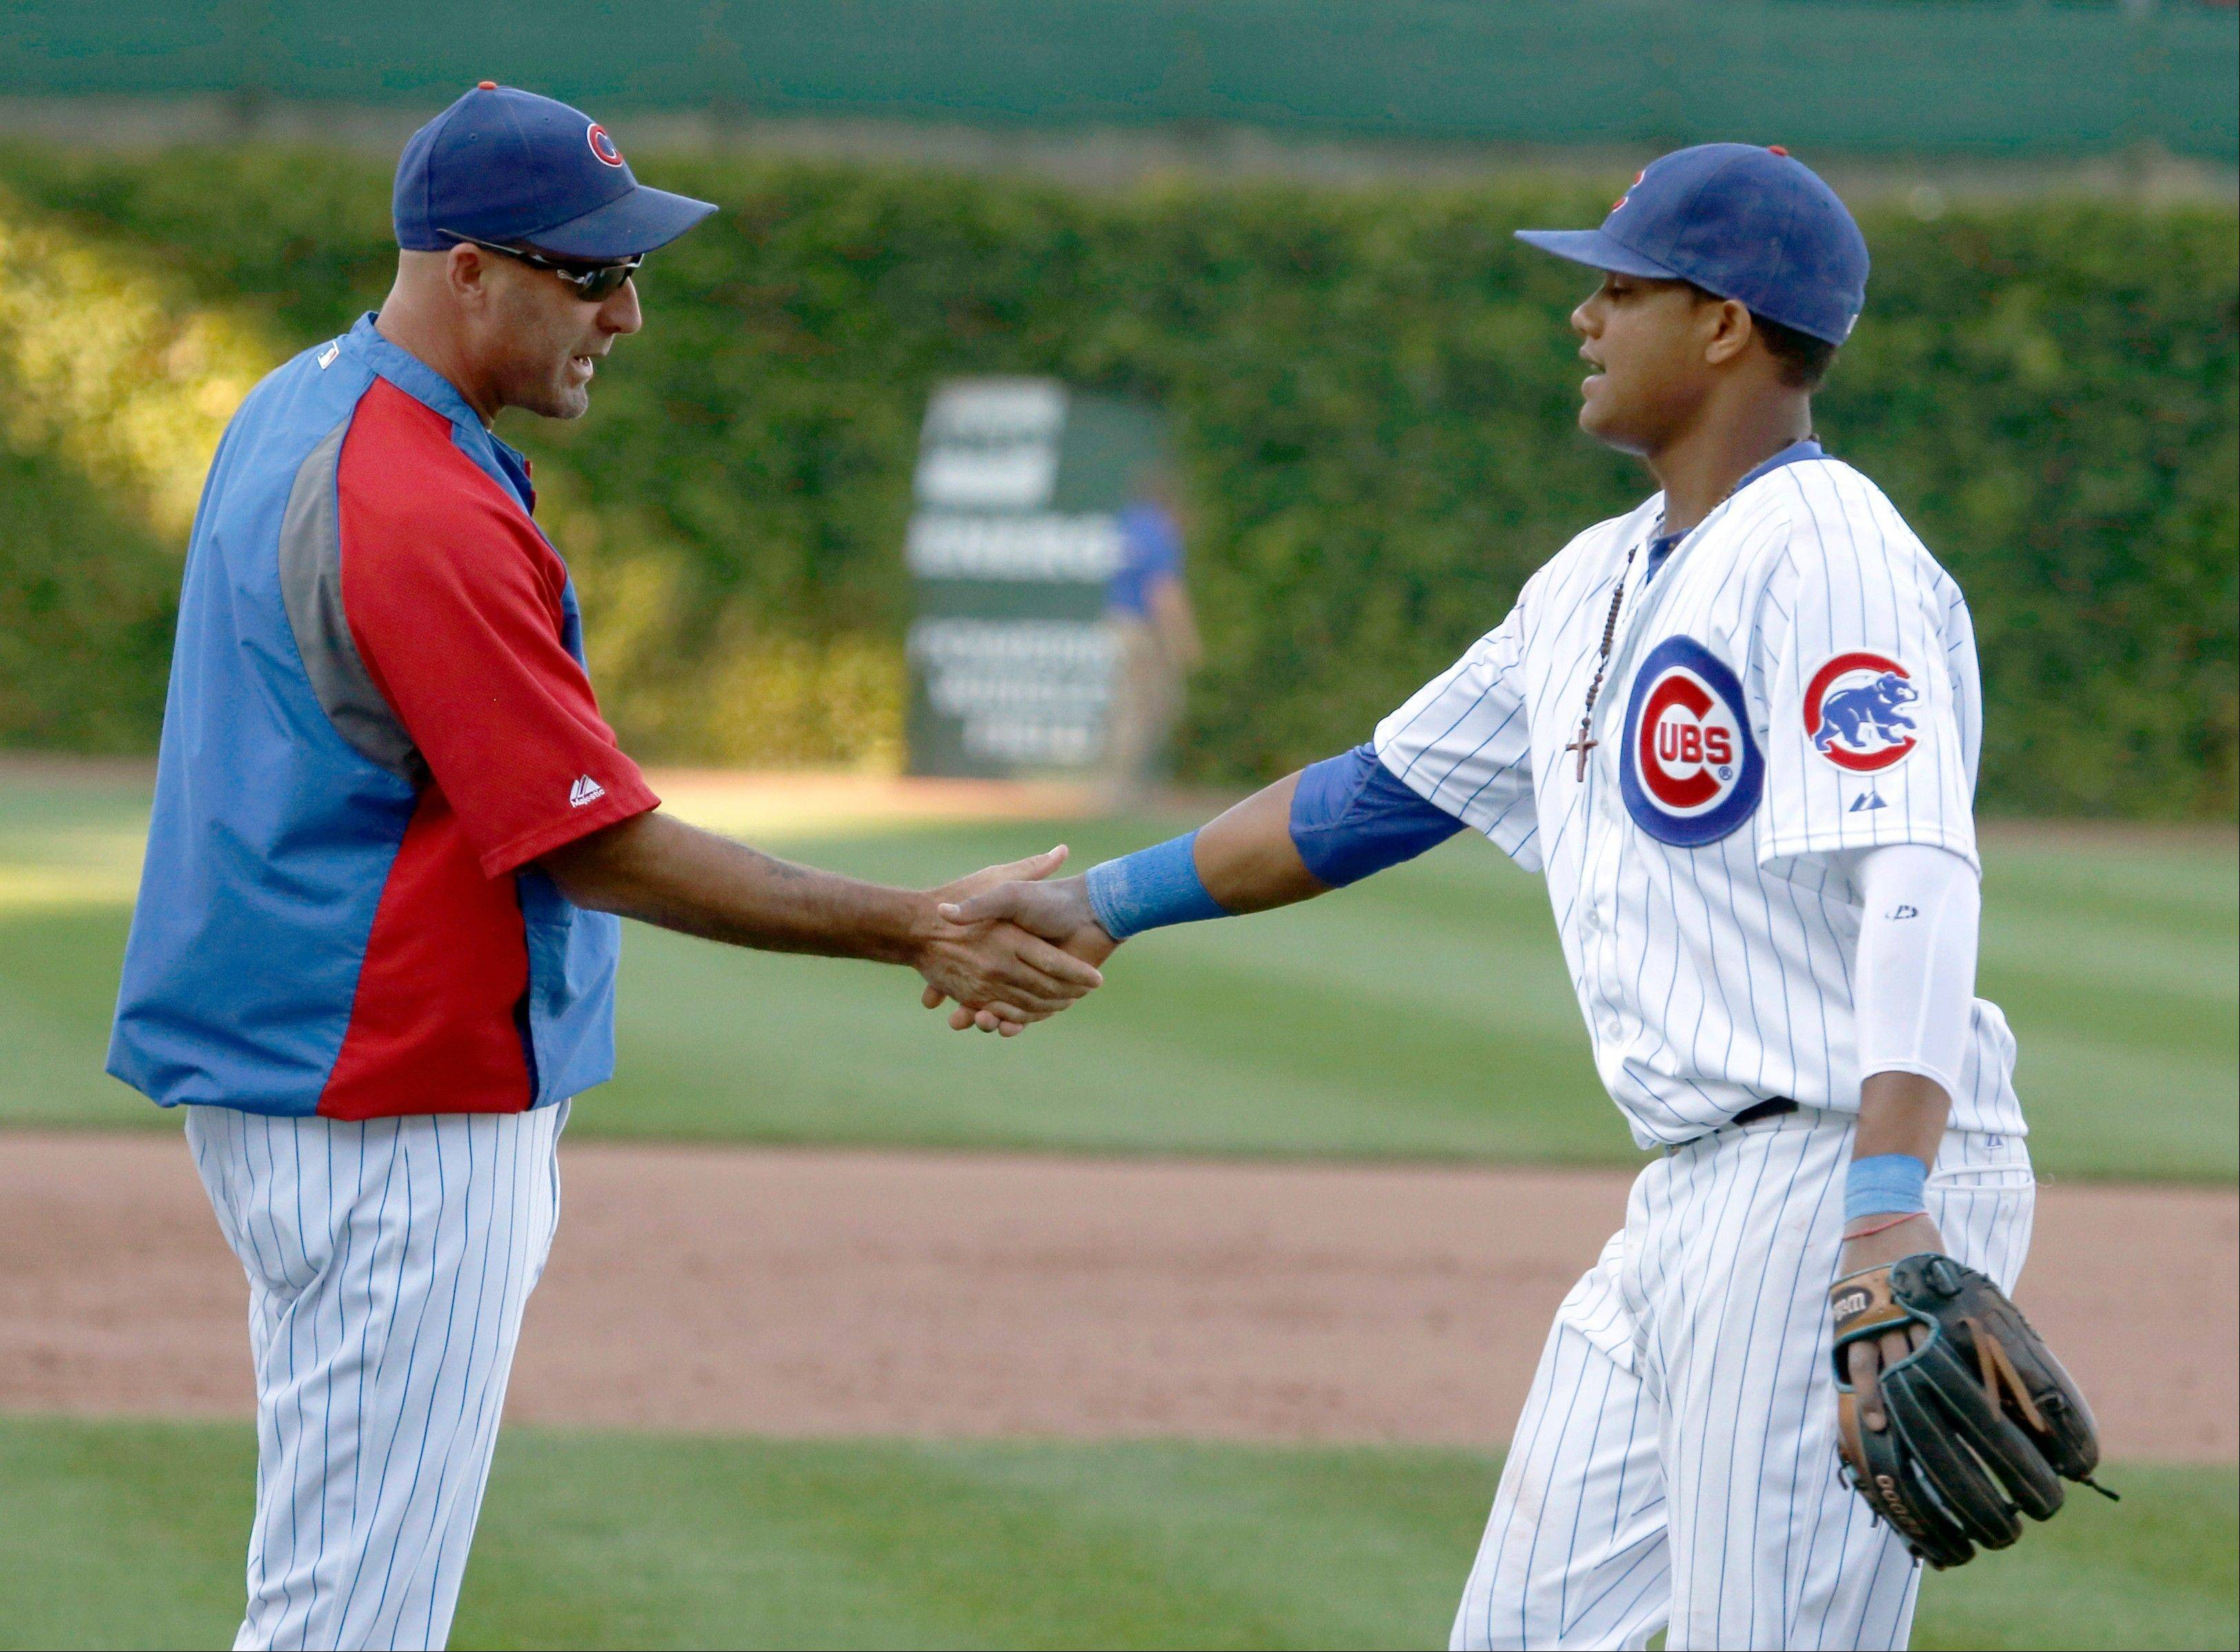 Chicago Cubs manager Dale Sveum greets shortstop Starlin Castro after the Cubs� 4-2 win over the Pittsburgh Pirates in their last home baseball game of the season Wednesday in Chicago. Sveum says he doesn�t know if he�ll be returning next year though his contract is through 2014.